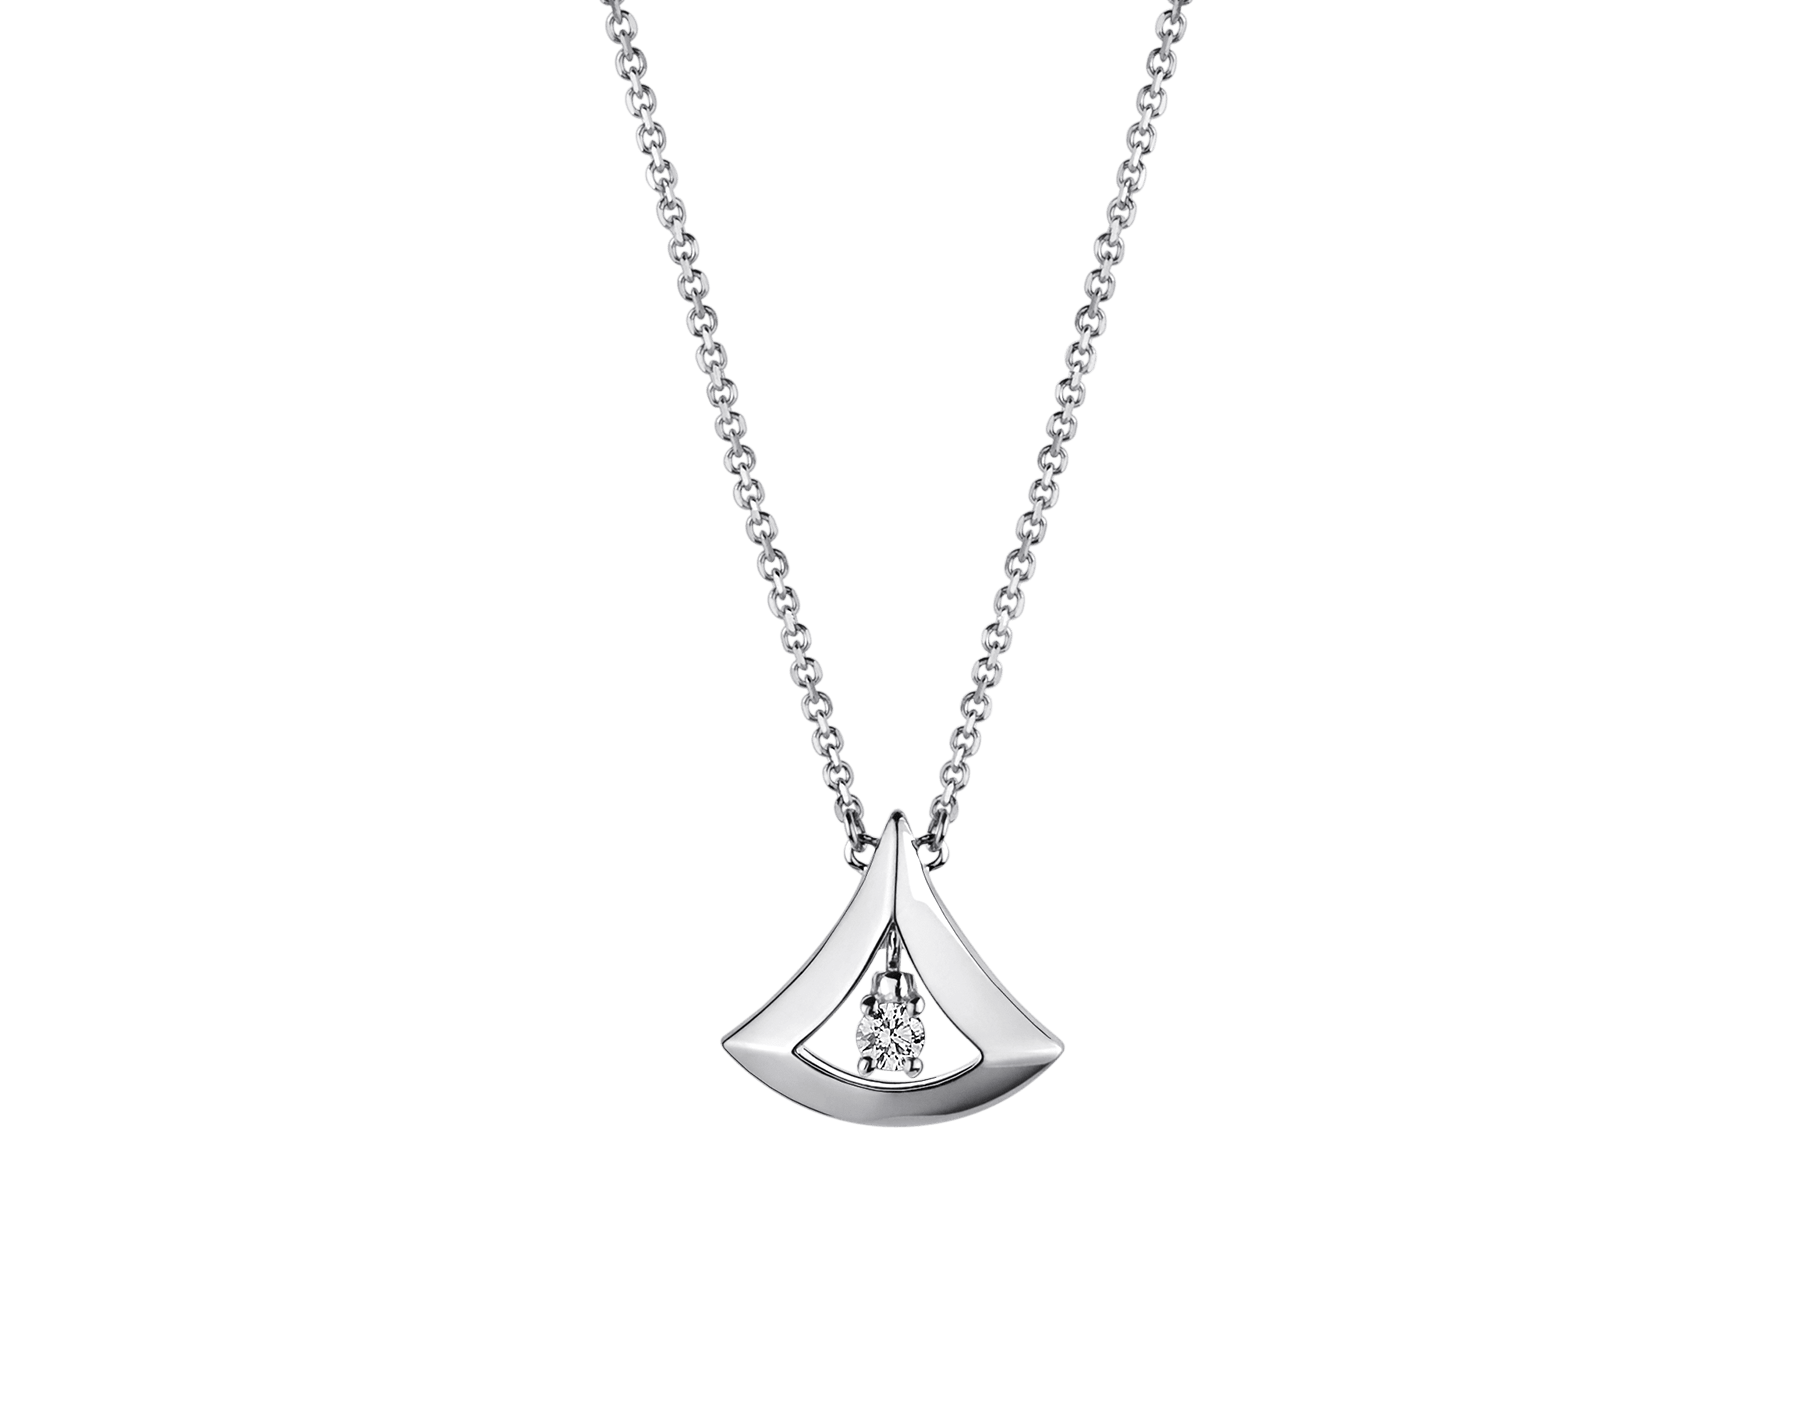 DIVAS' DREAM openwork necklace in 18 kt white gold with 18 kt white gold pendant set with a central diamond (0.10 ct). 354048 image 1